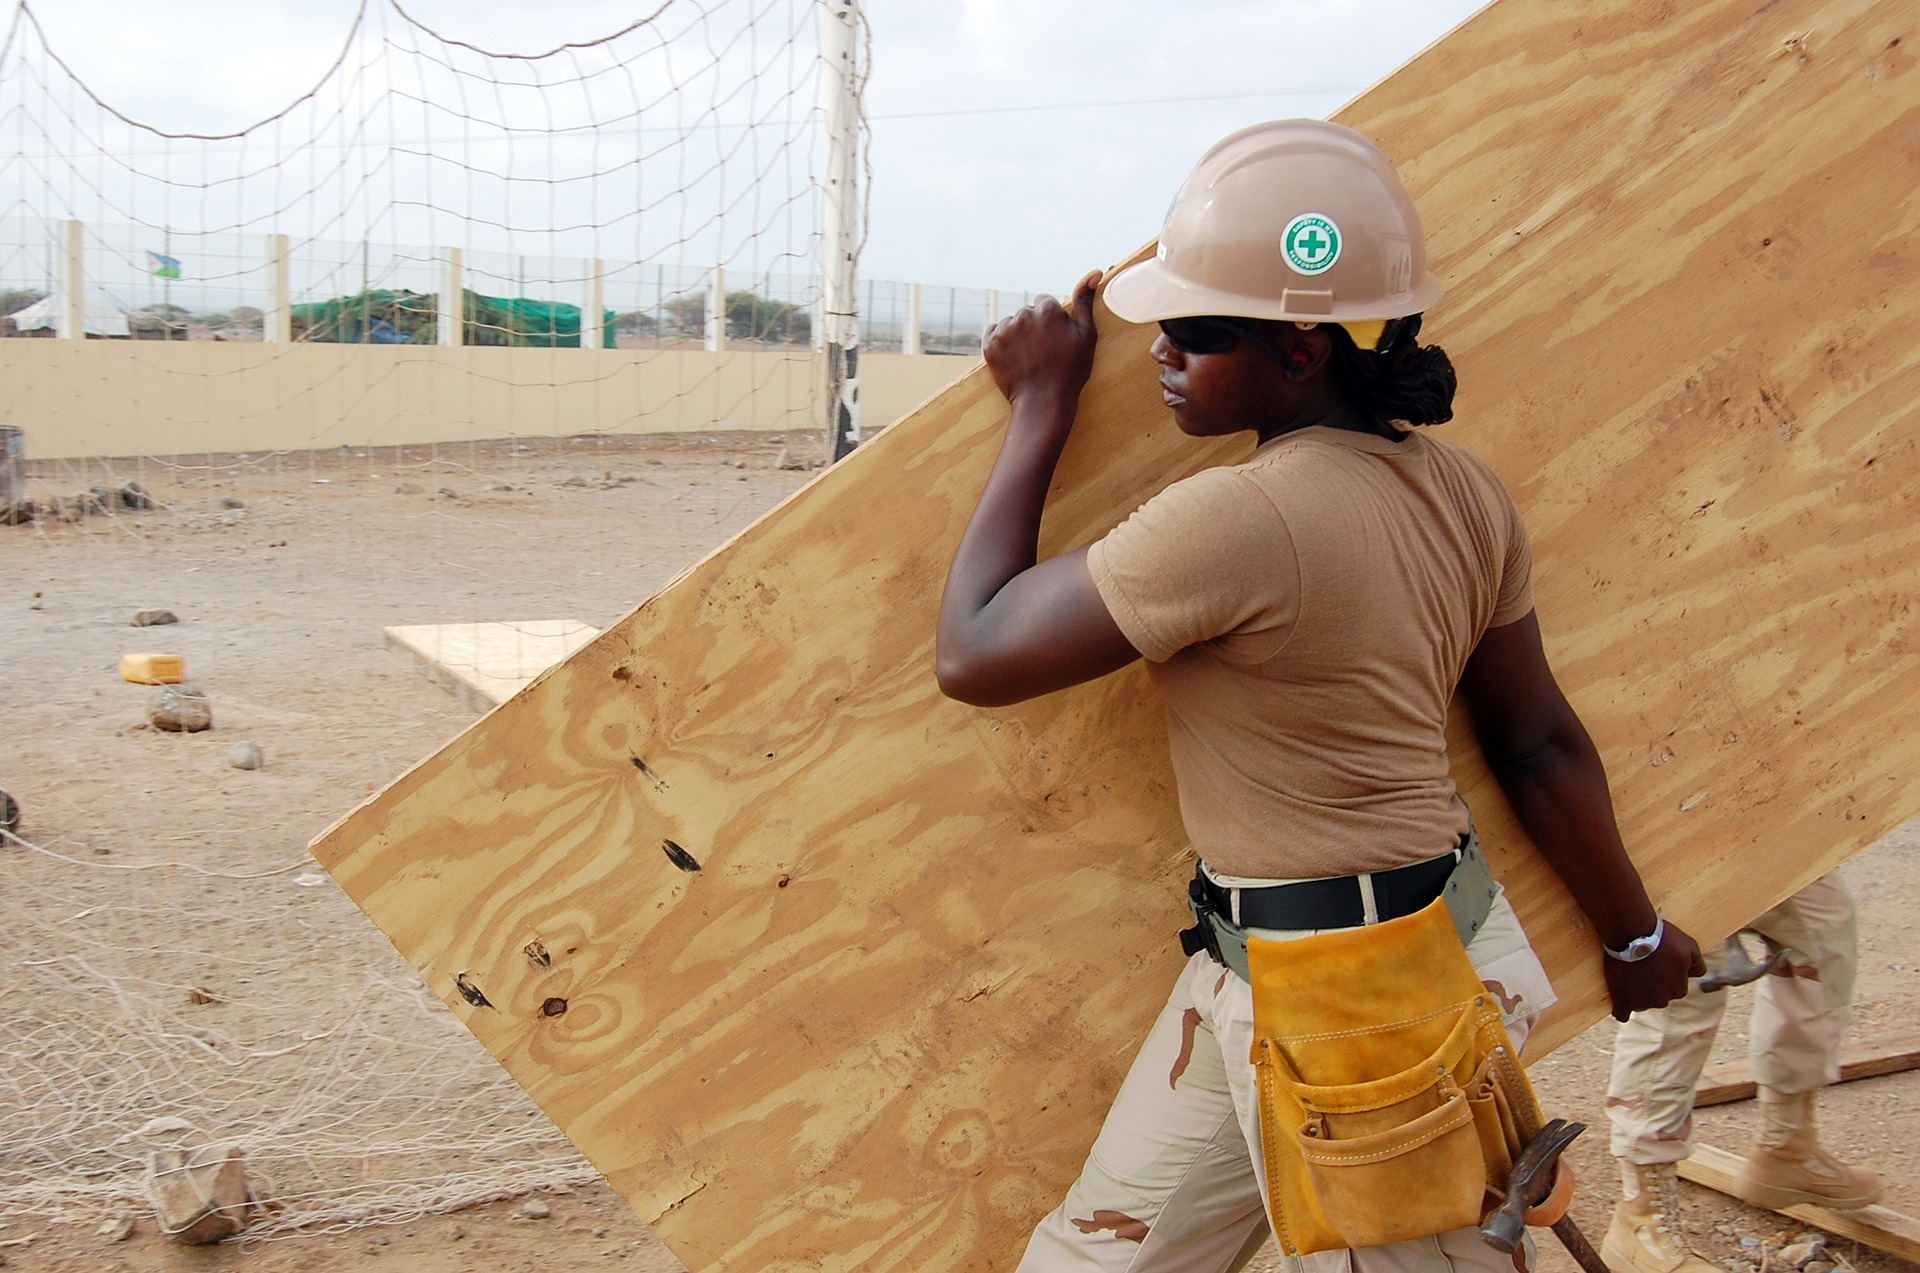 Woman carrying plywood on a construction site.